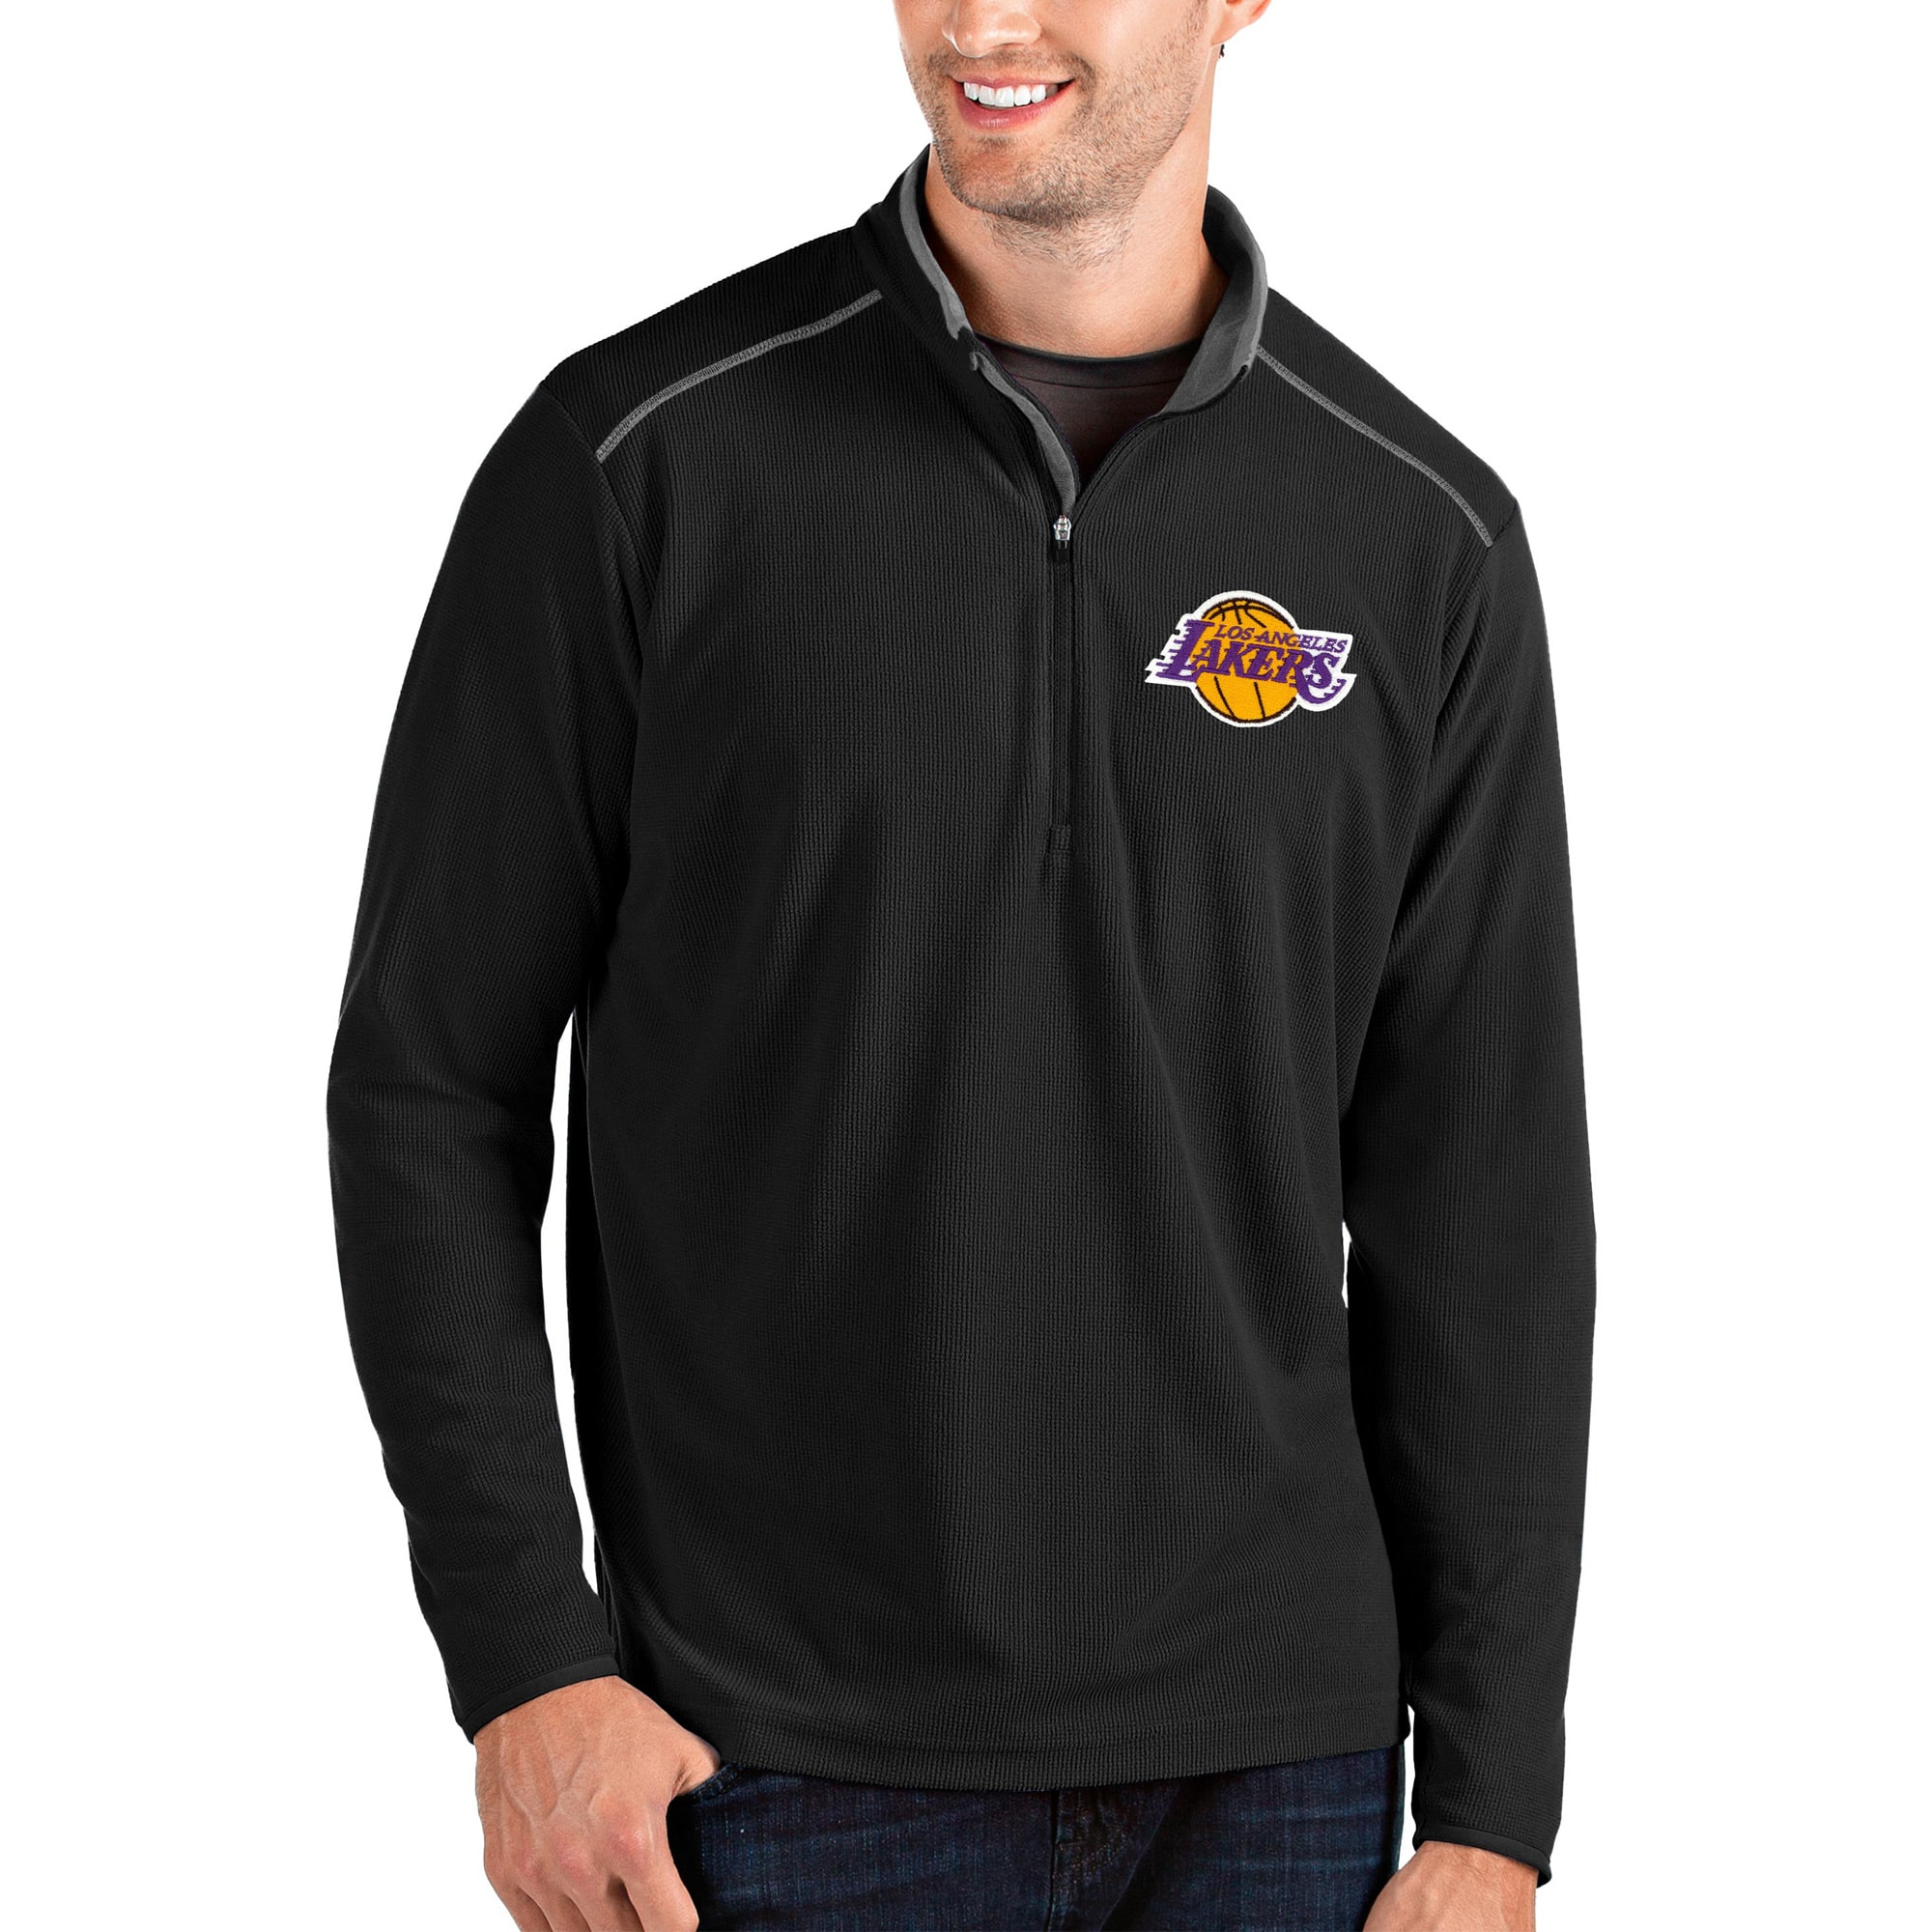 Los Angeles Lakers Antigua Glacier Quarter-Zip Pullover Jacket - Black/Gray